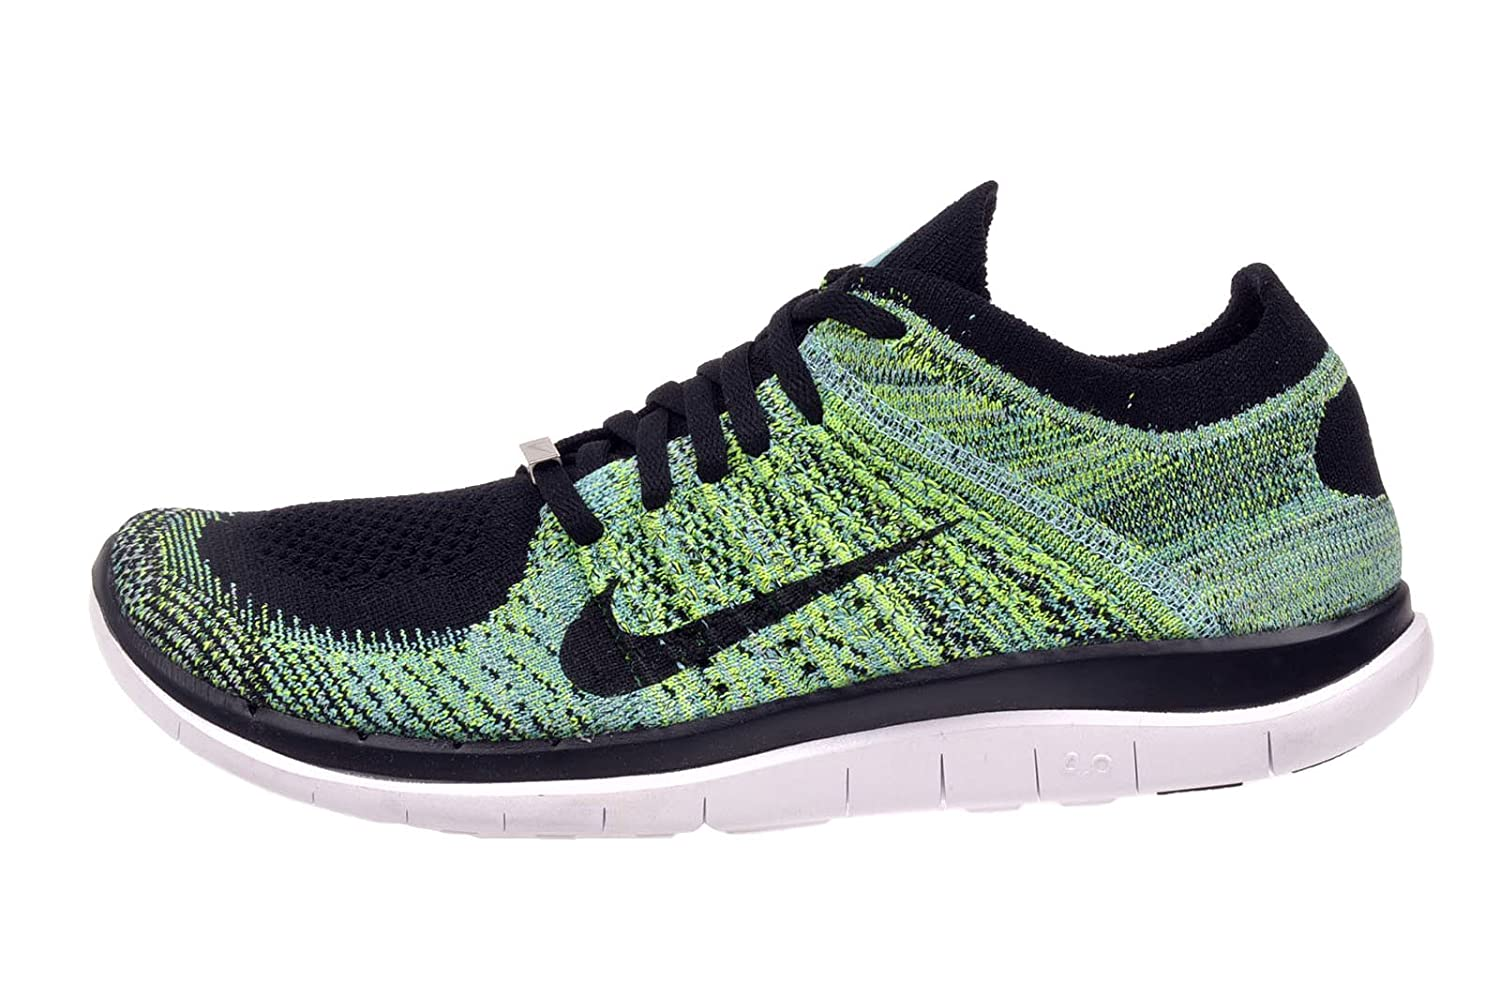 wholesale dealer e0c23 dbec3 Nike Free Flyknit 4.0 NWM DC Half Marathon Women s Running Shoes (9 B(M)  US)  Amazon.ca  Shoes   Handbags